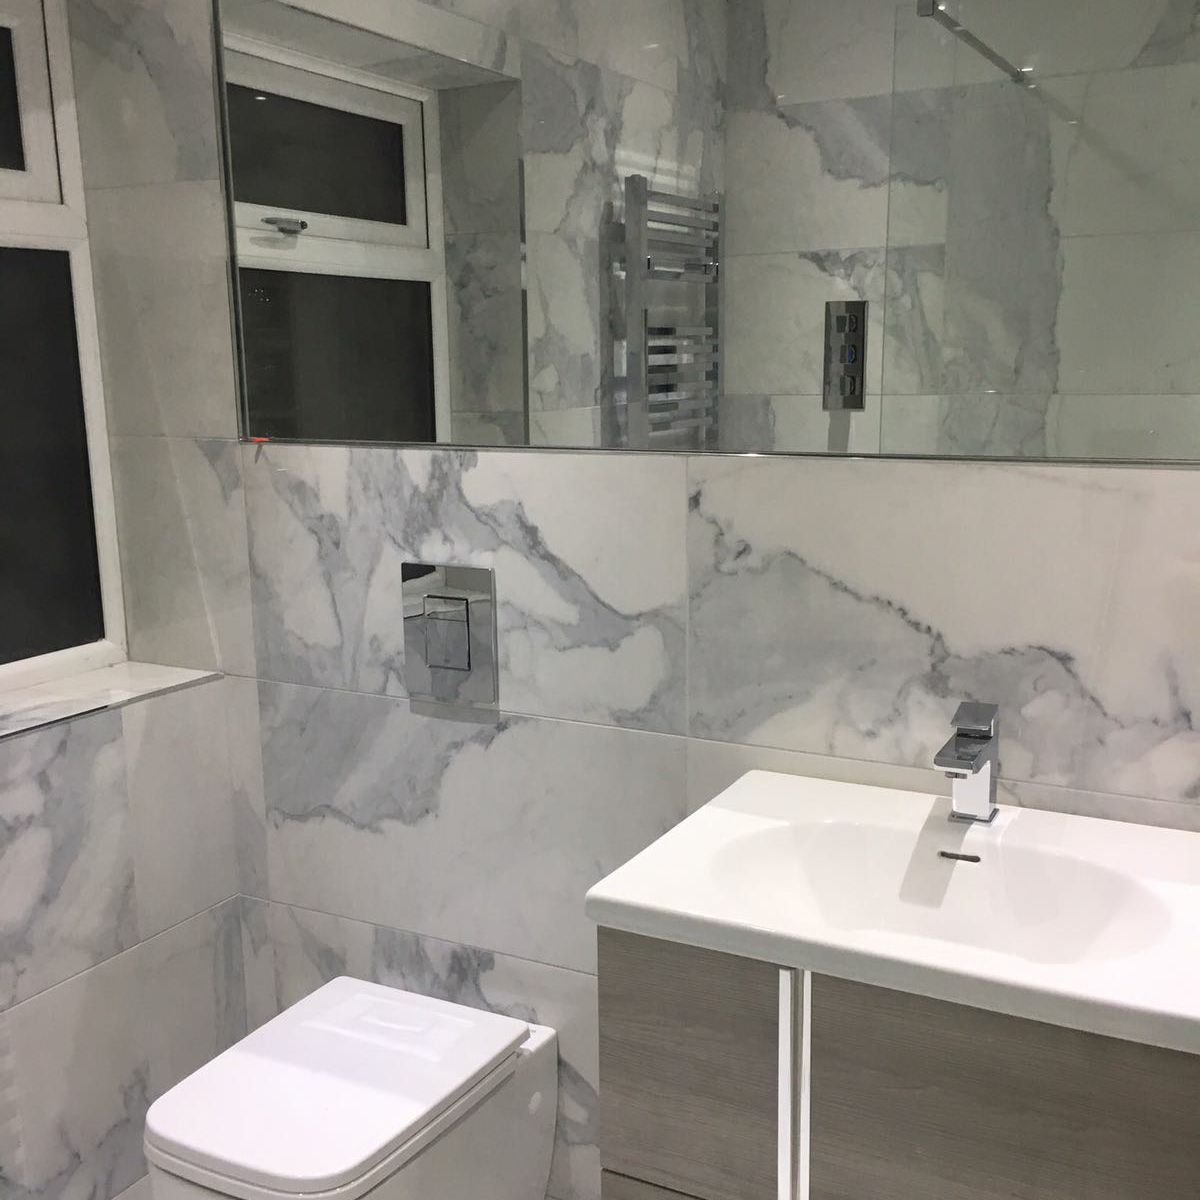 Bathrooms birmingham uk - Ensuite 5 000